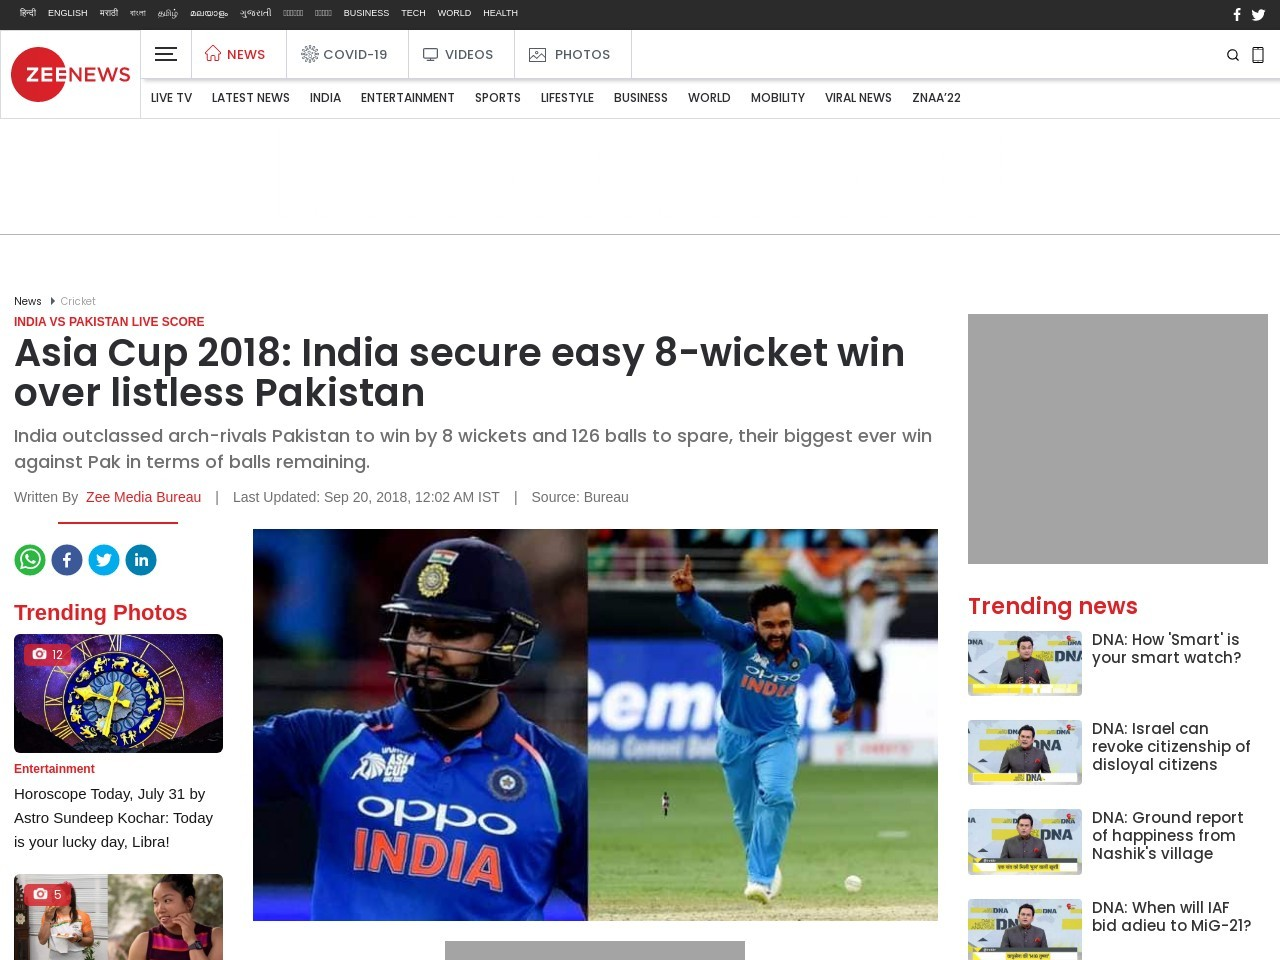 Asia Cup 2018: India secure easy 8-wicket win over listless Pakistan